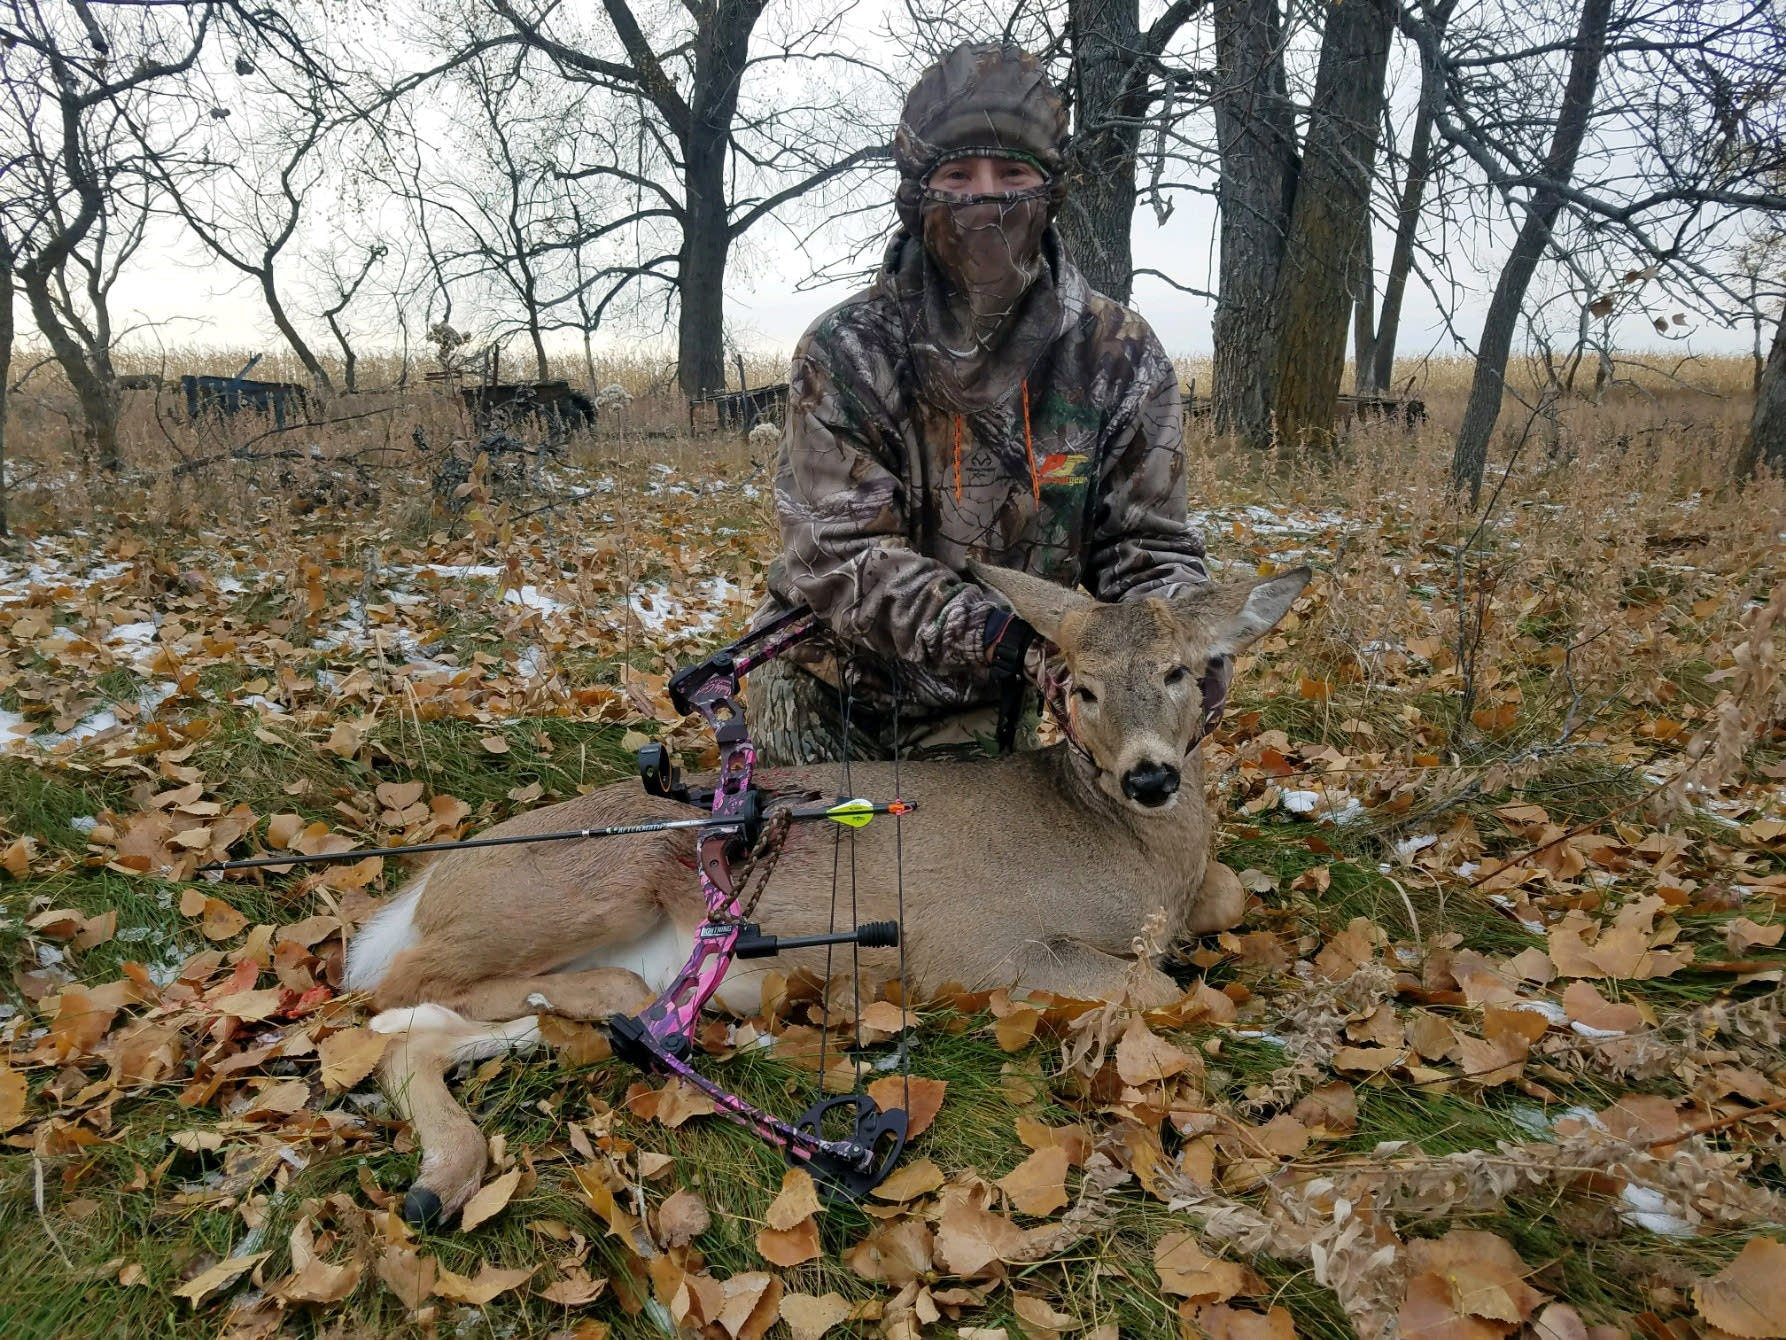 Misty Stoll with the deer she shot on Oct. 28.